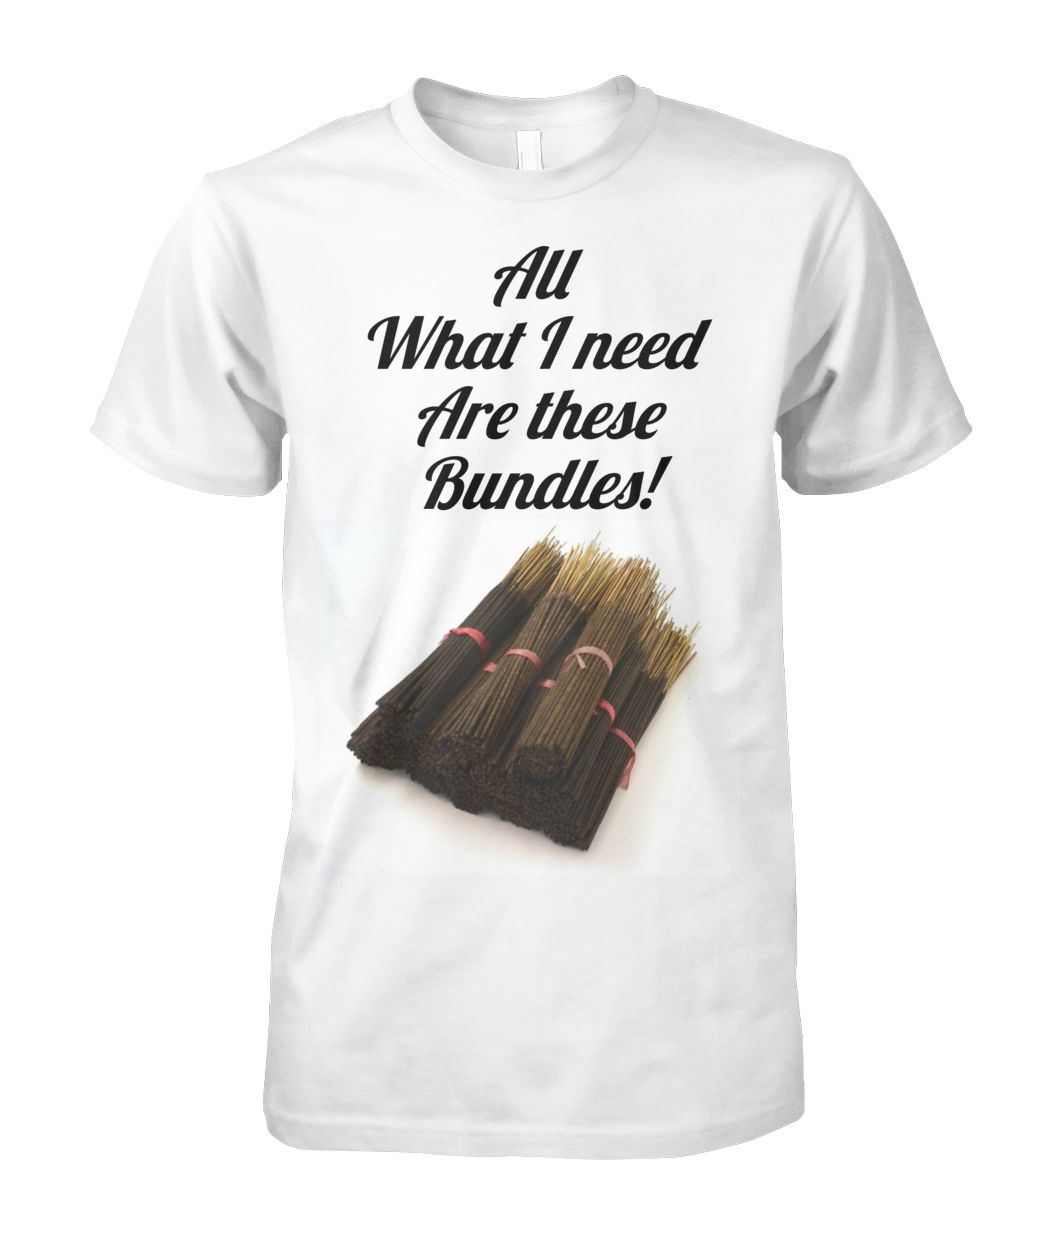 Incense Lovers T-shirts - B&R African Styles